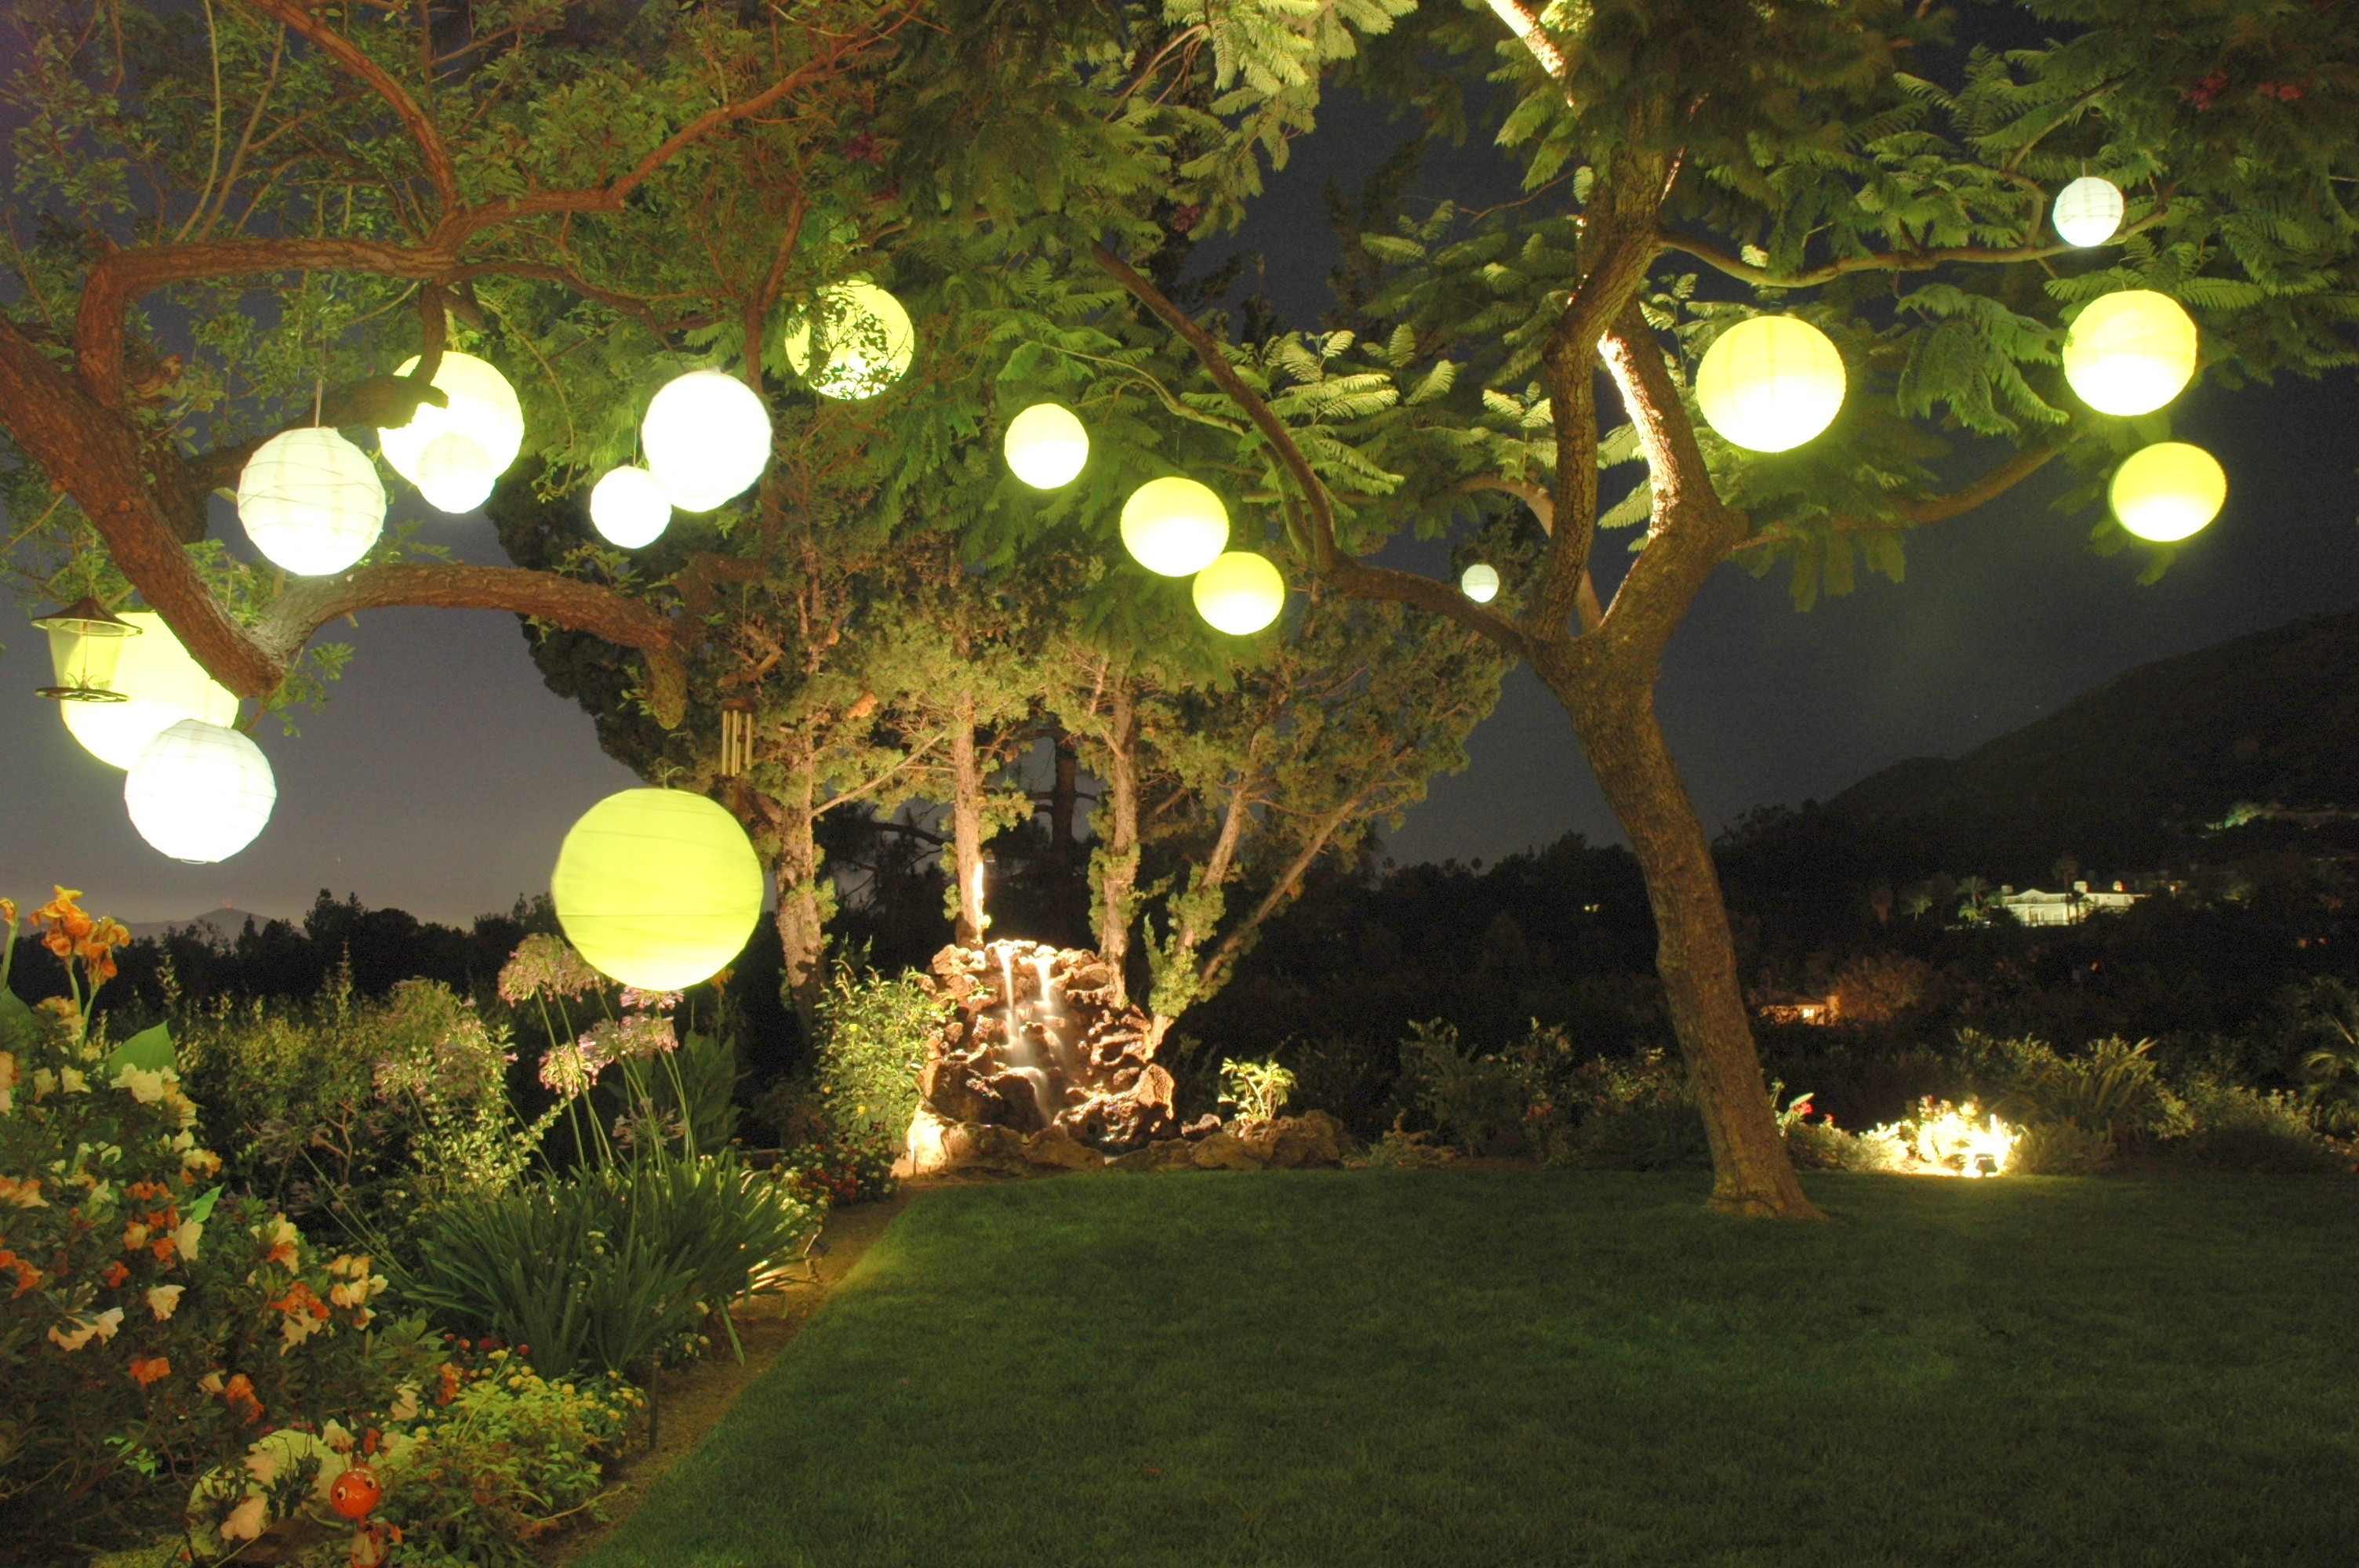 Decorating: Garden Party With Paper Lantern Light Intended For Outdoor Hanging Japanese Lanterns (View 6 of 20)